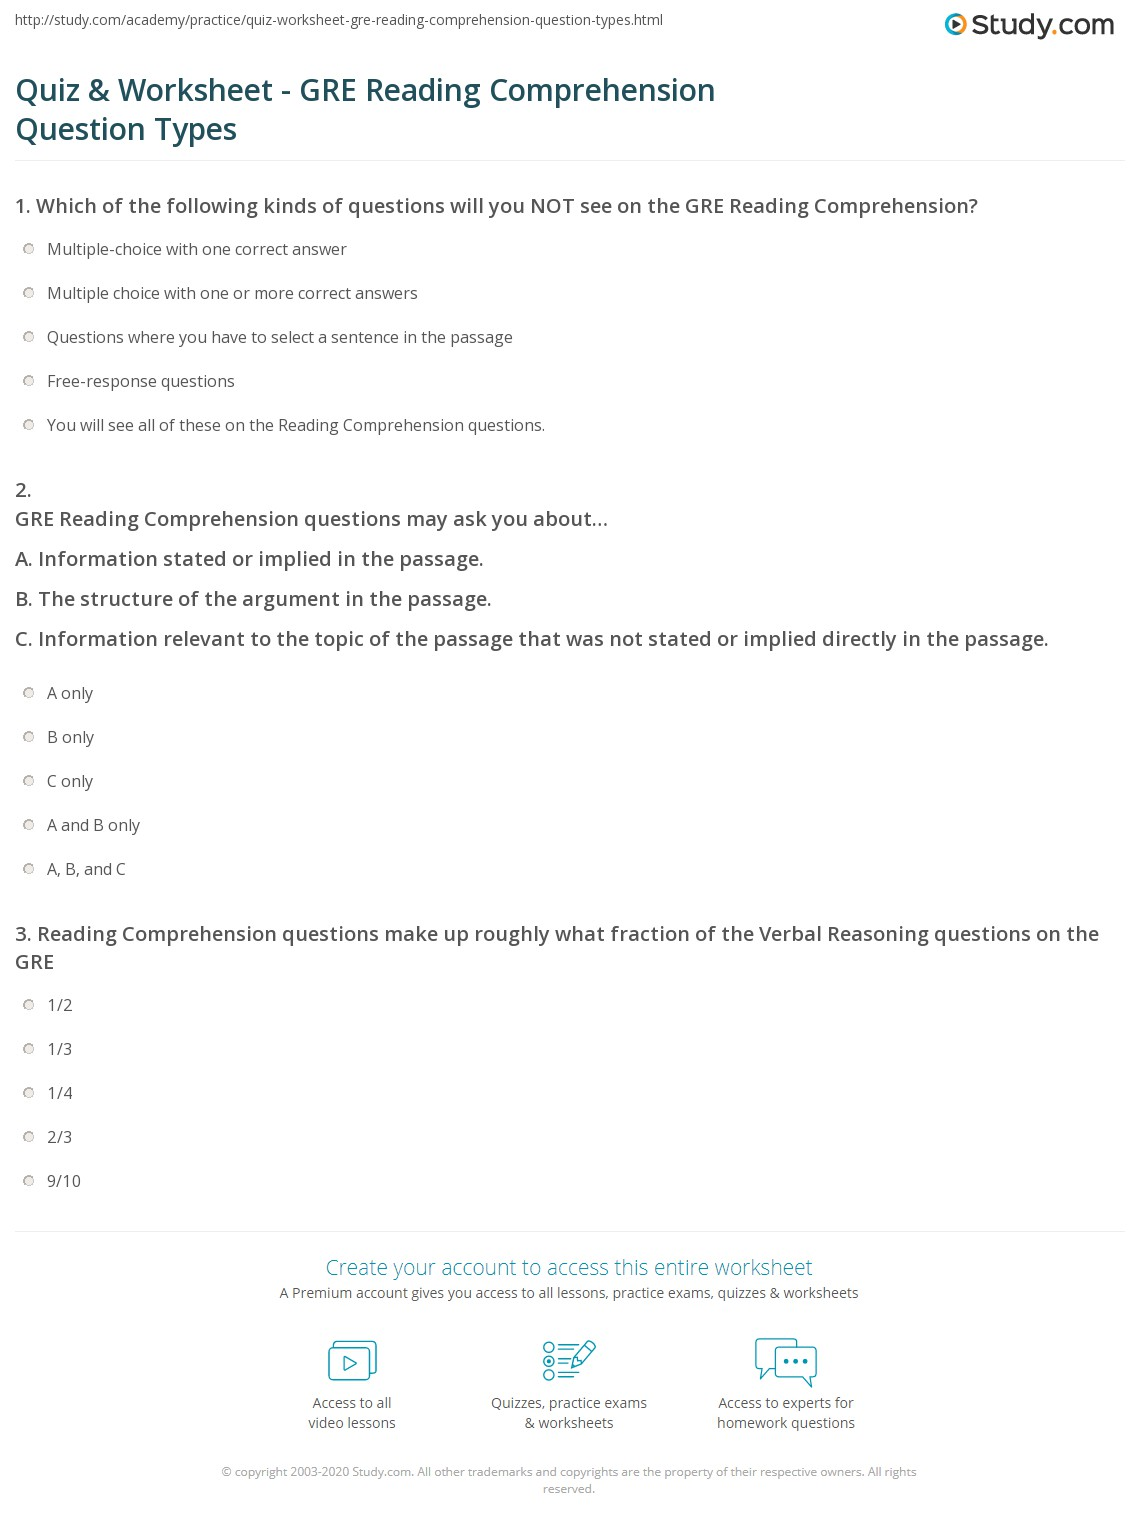 Quiz & Worksheet - GRE Reading Comprehension Question Types | Study ...